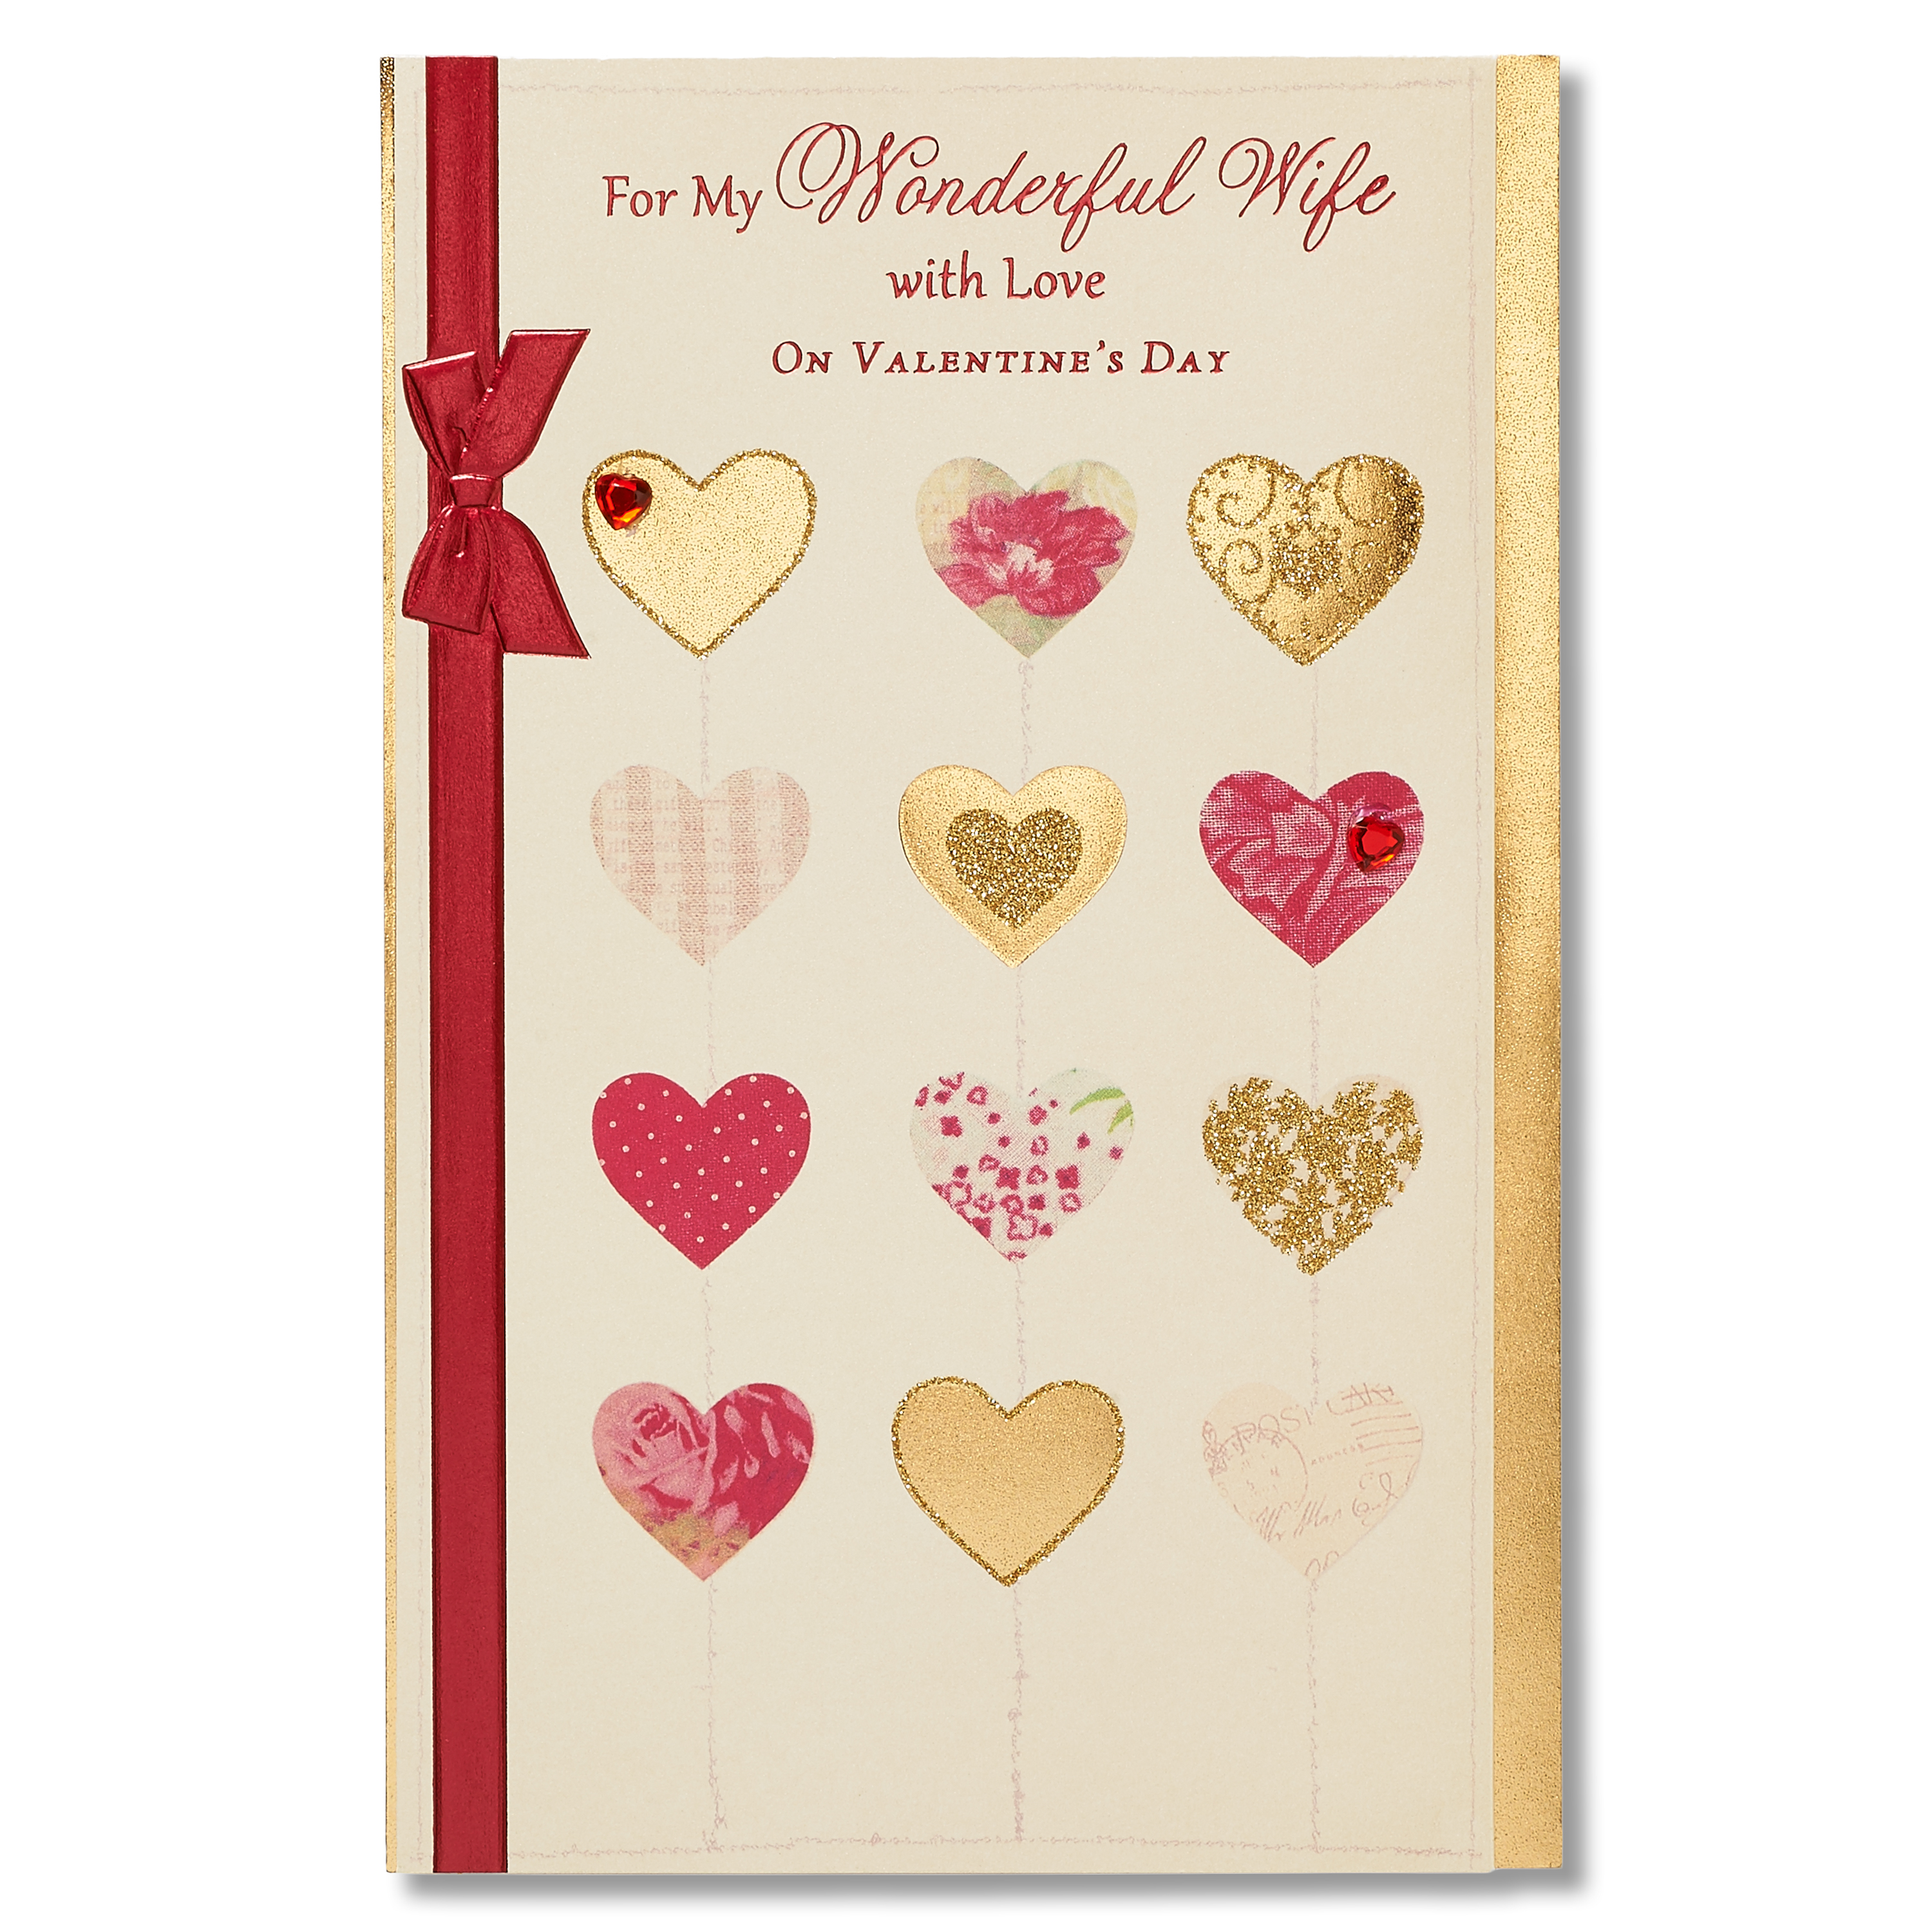 American Greetings Wonderful Valentines Day Card For Wife With